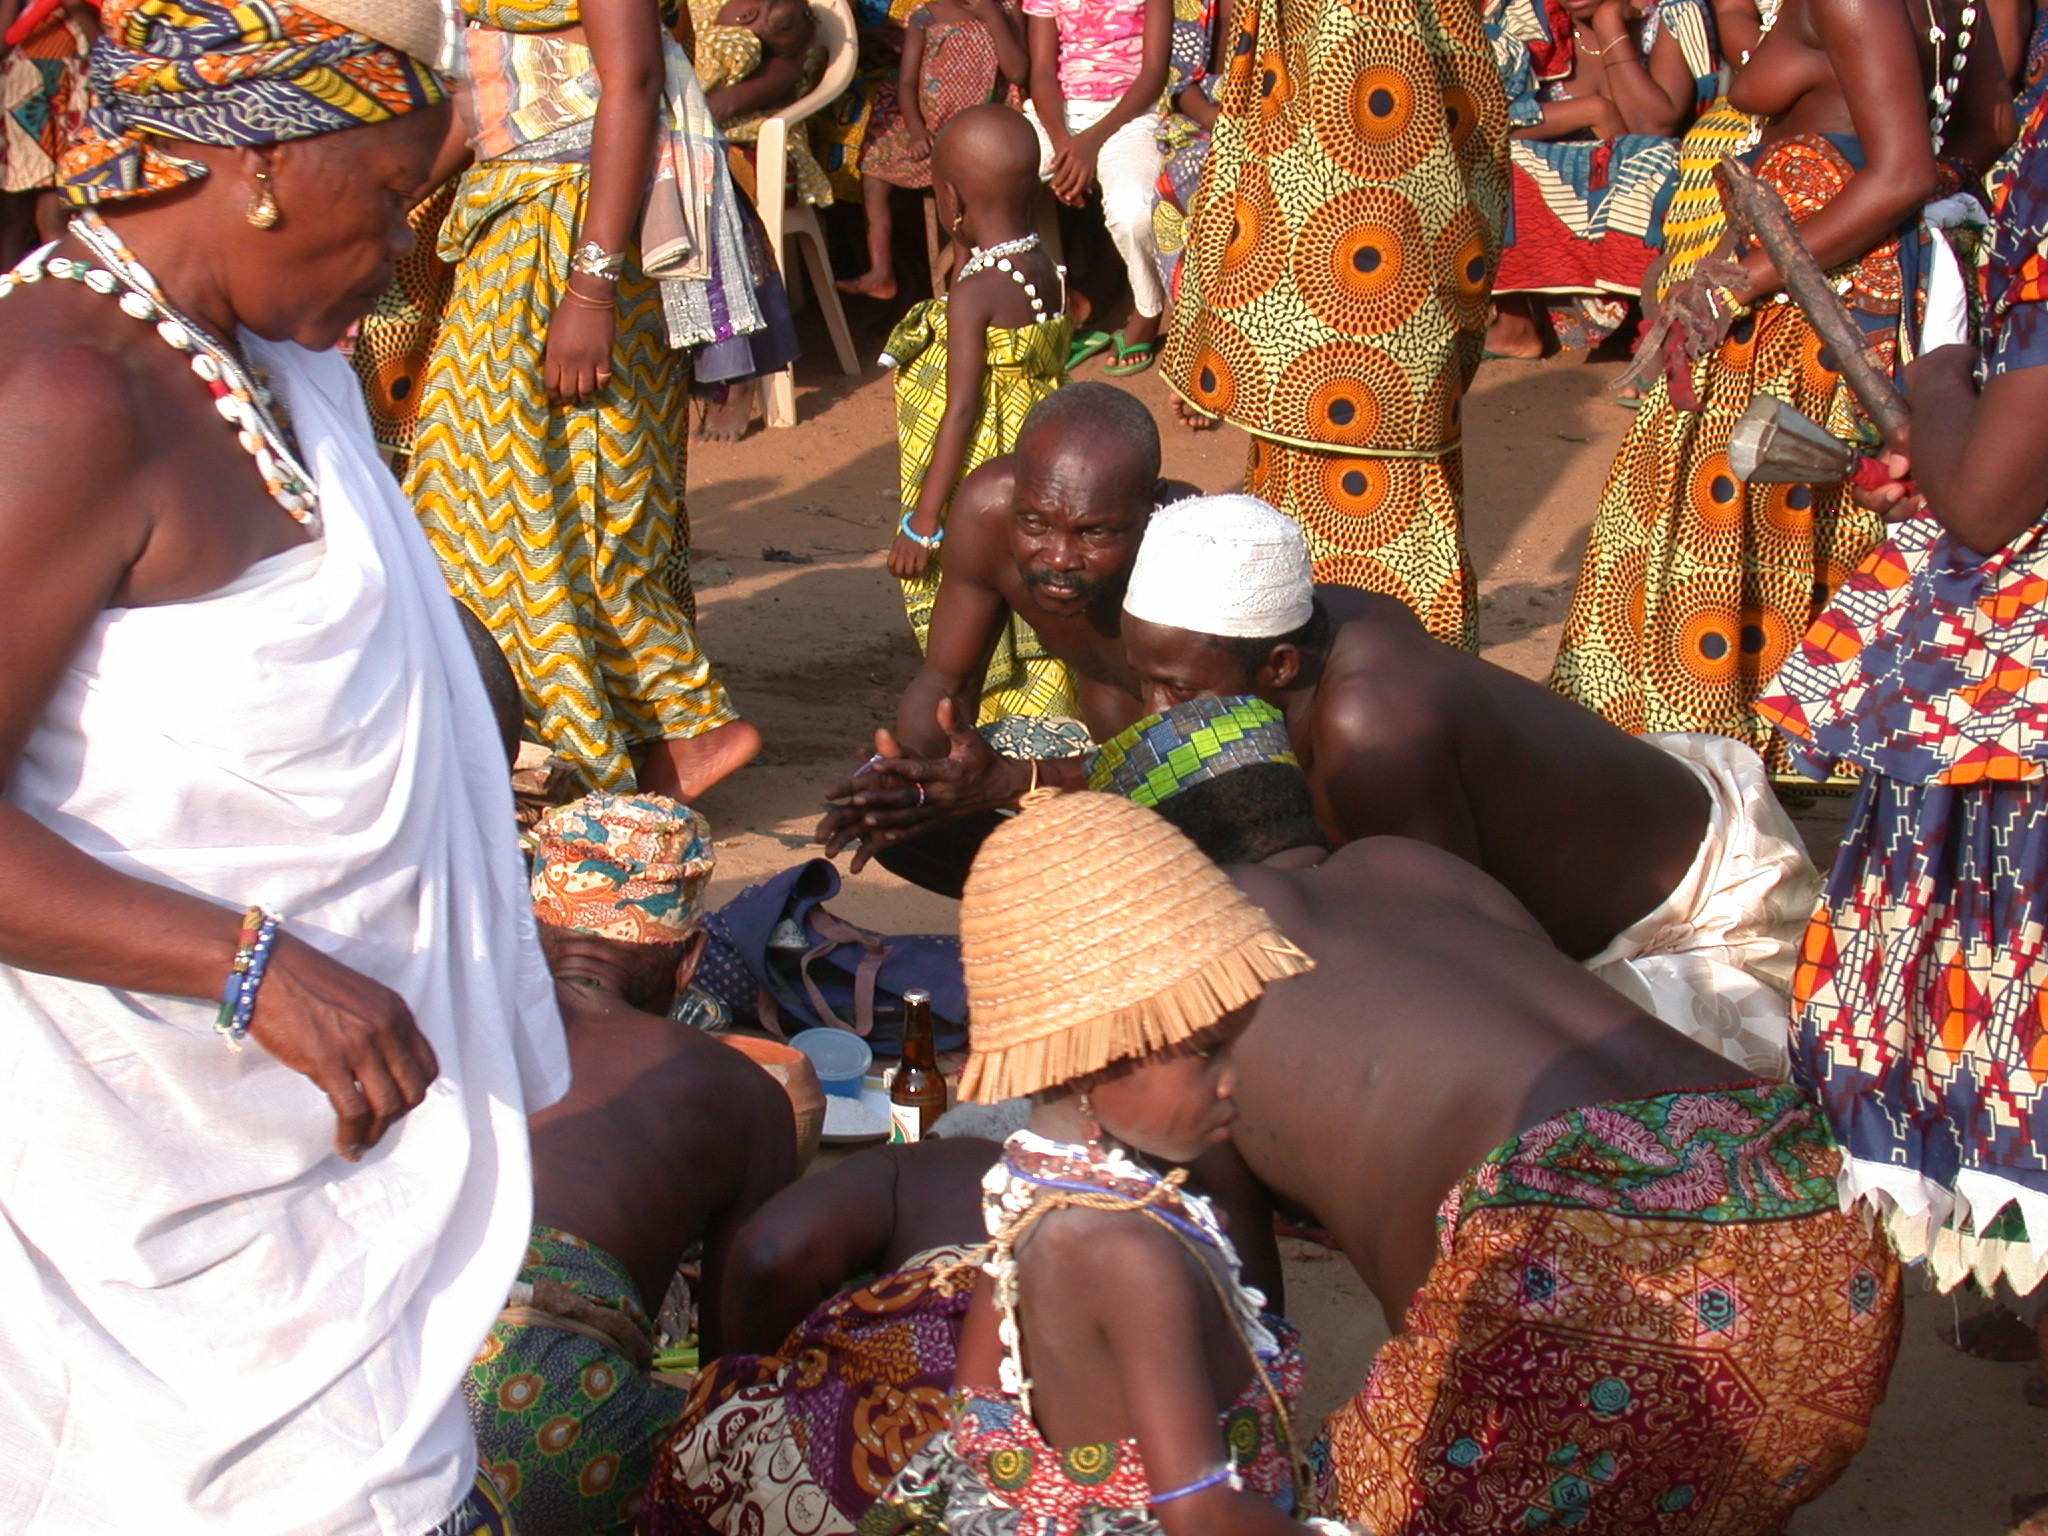 Preparing for Sacrifice, Vodun Ritual, Ouidah, Benin